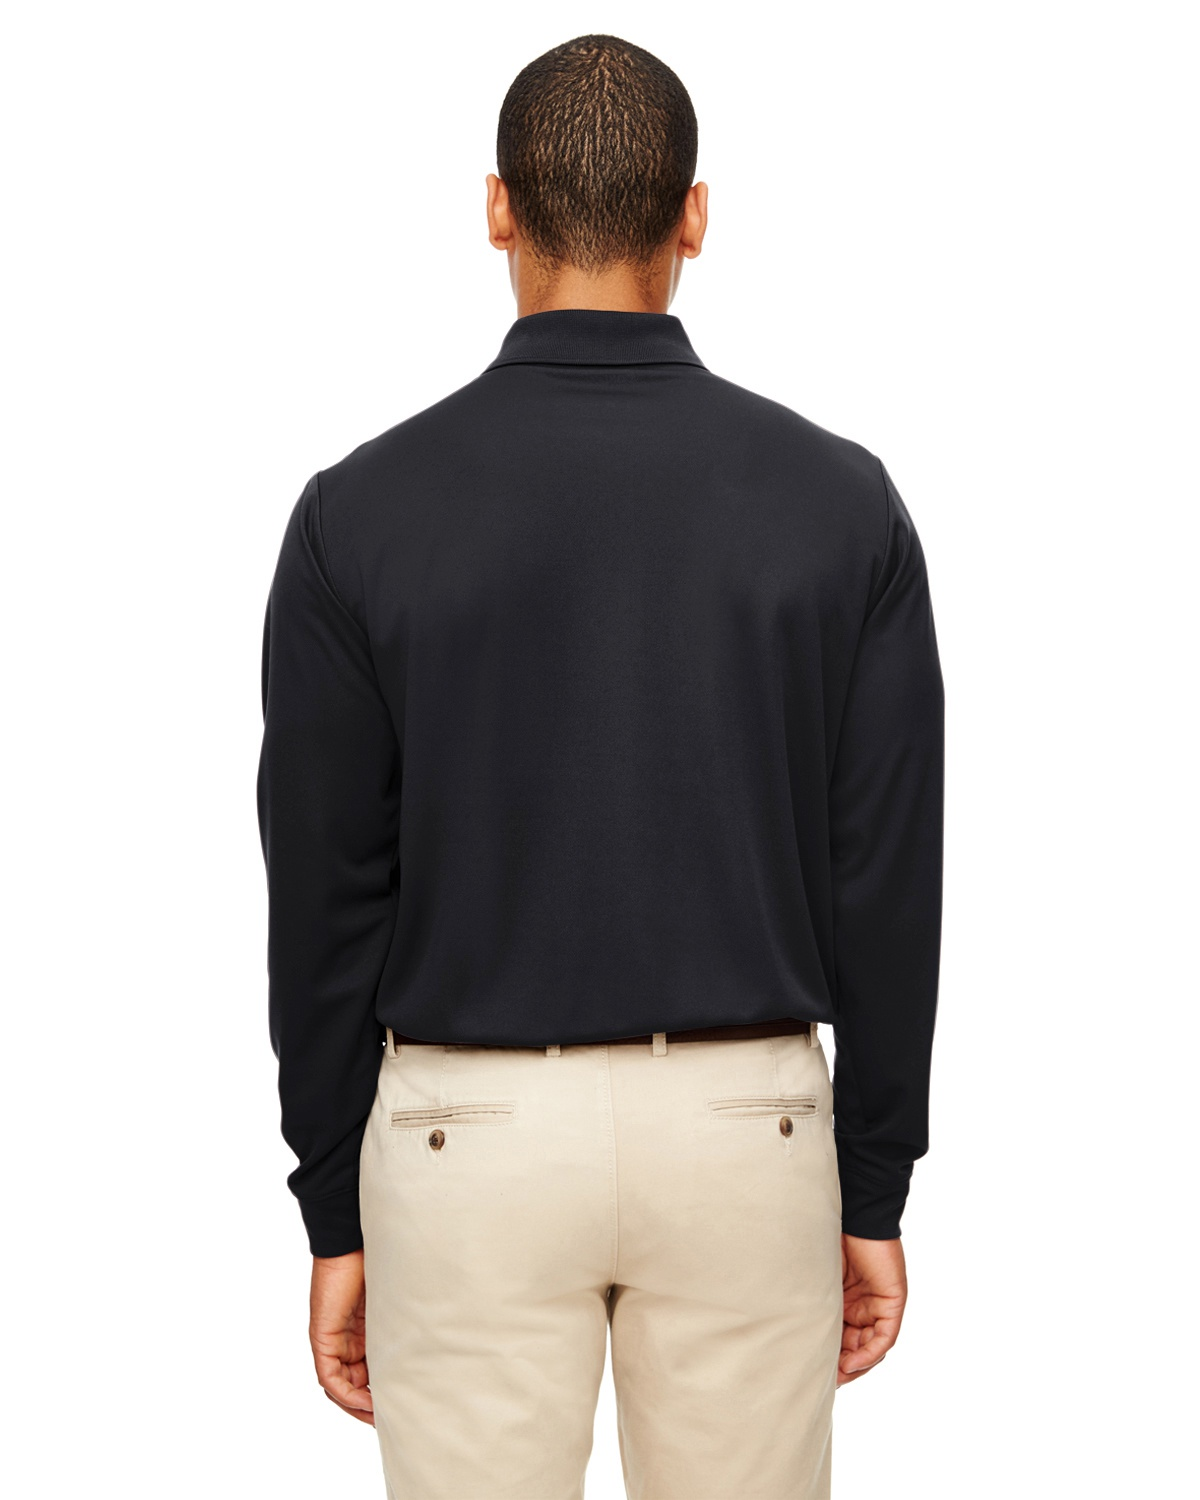 'Ash City - Core 365 88192P Adult Pinnacle Performance Long-Sleeve Piqué Polo with Pocket'